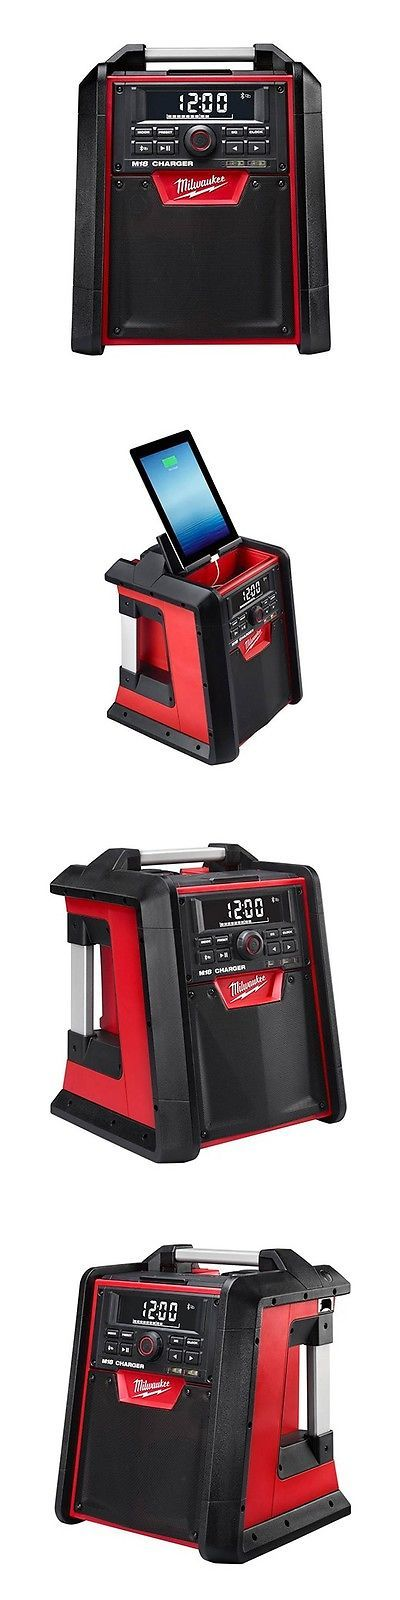 Other Hand Tools 303: 2792-20 Milwaukee M18™ Jobsite Radio Charger Just Out On The Market -> BUY IT NOW ONLY: $205.75 on eBay!